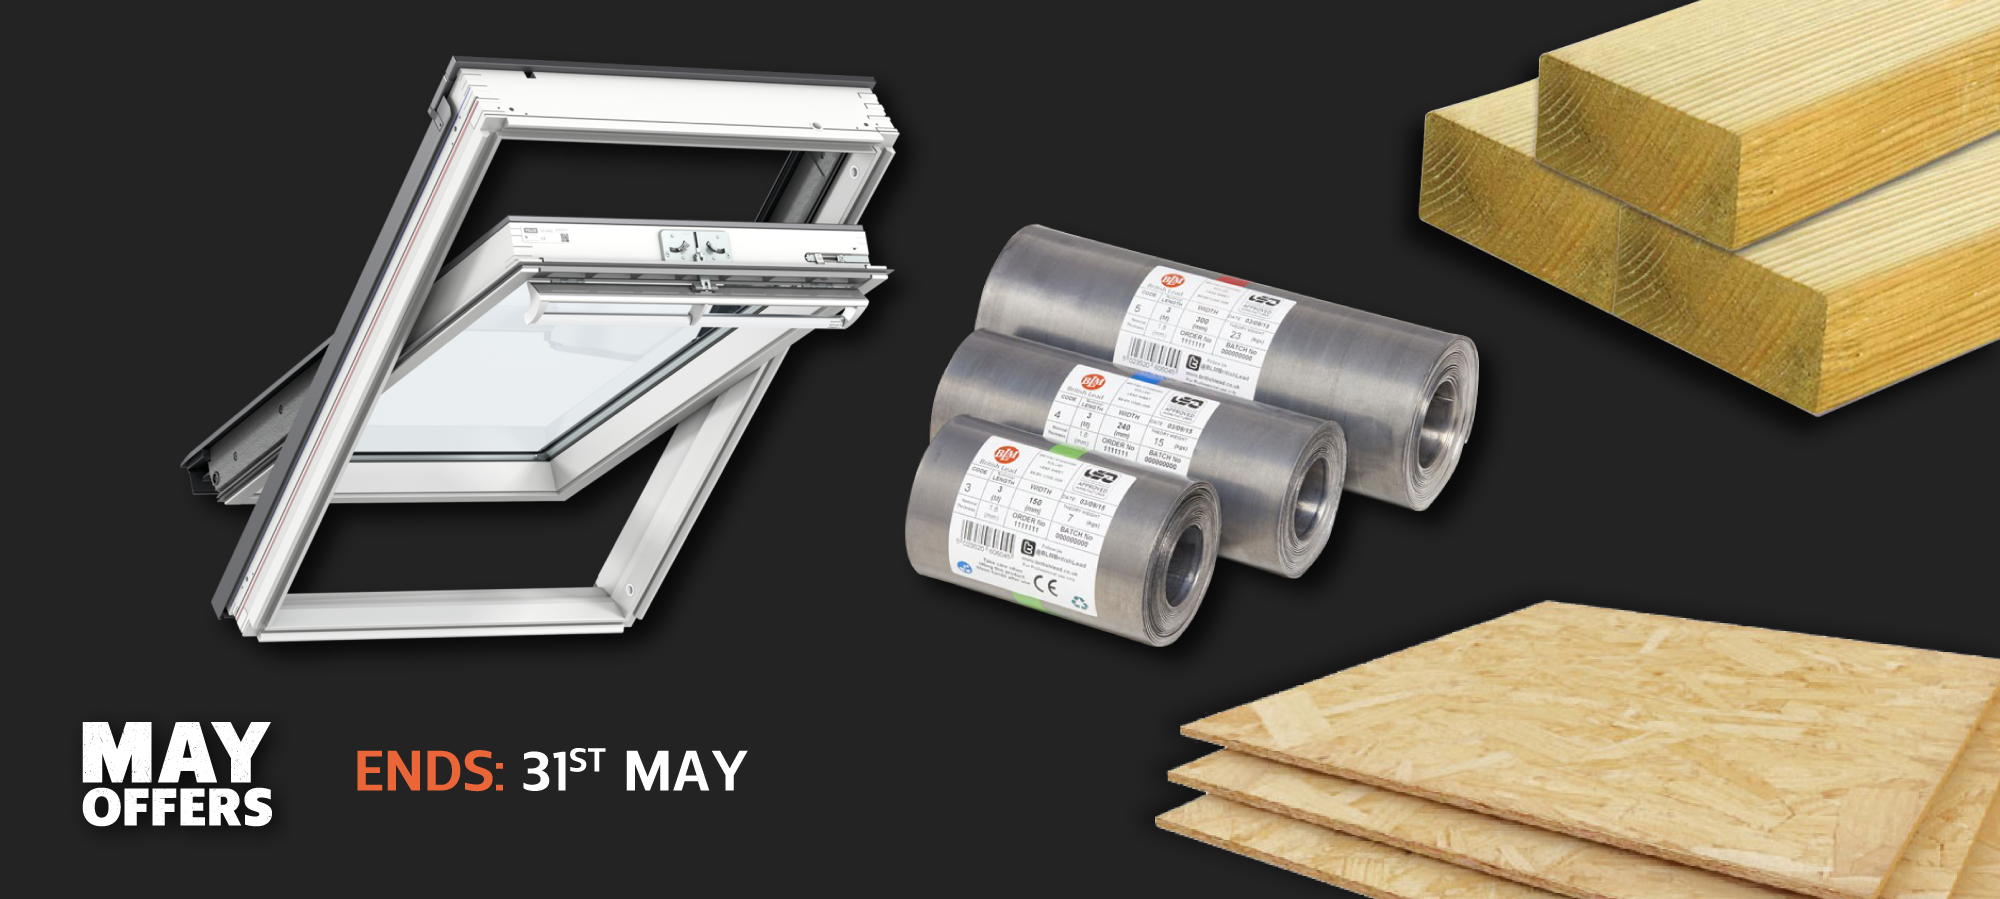 Roofbase 2020 May Offers